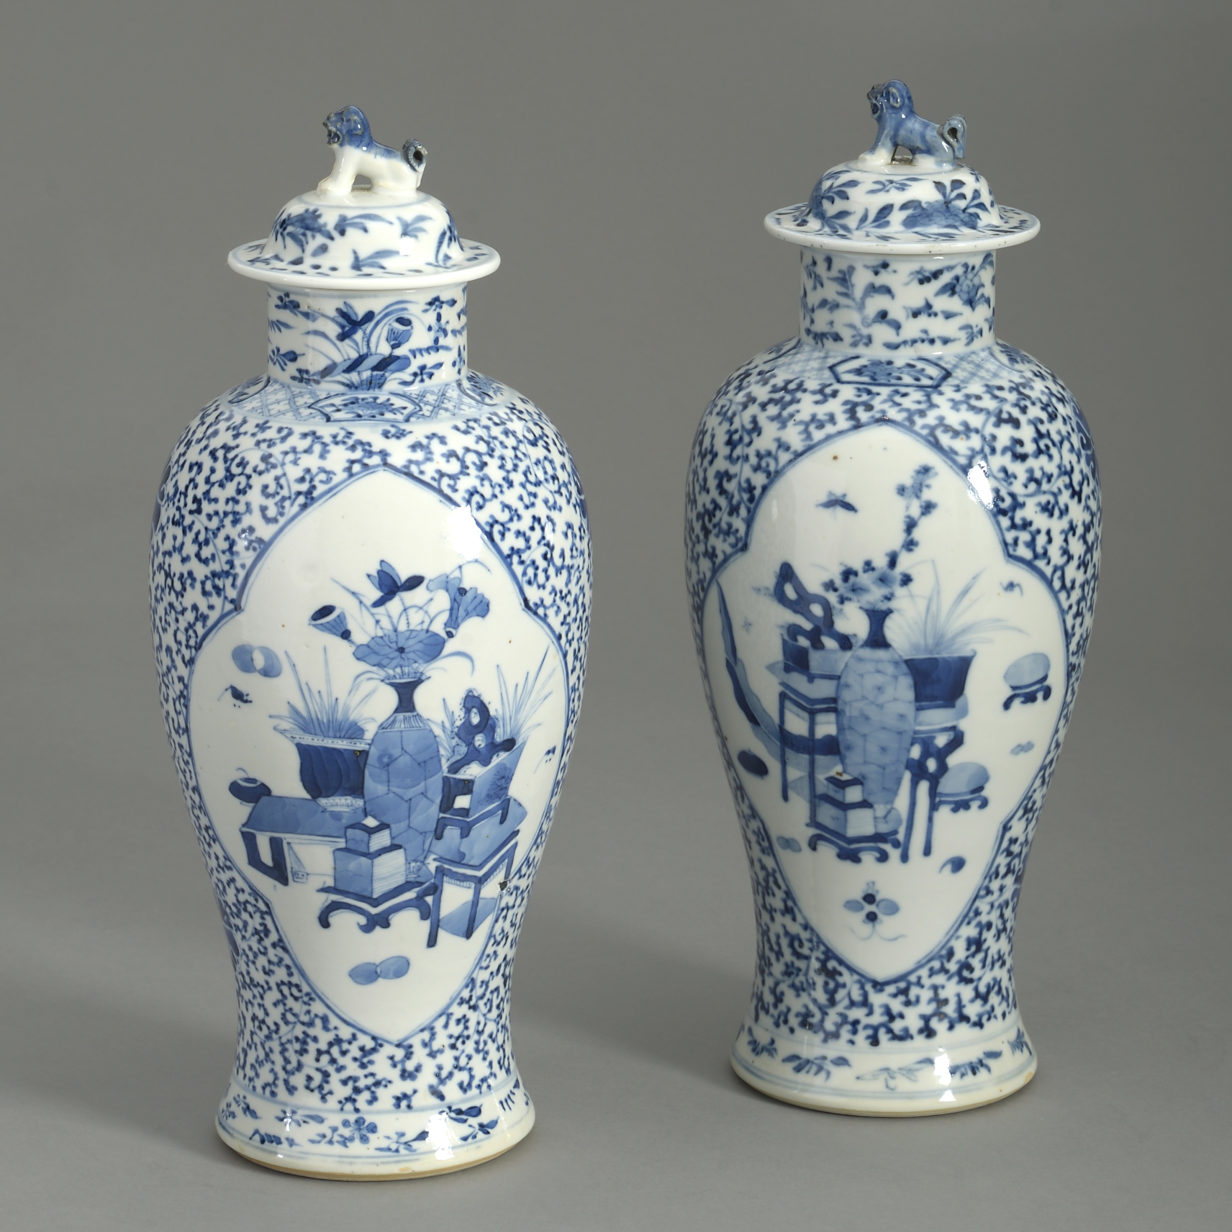 Pair of Tongzhi Blue and White Vases